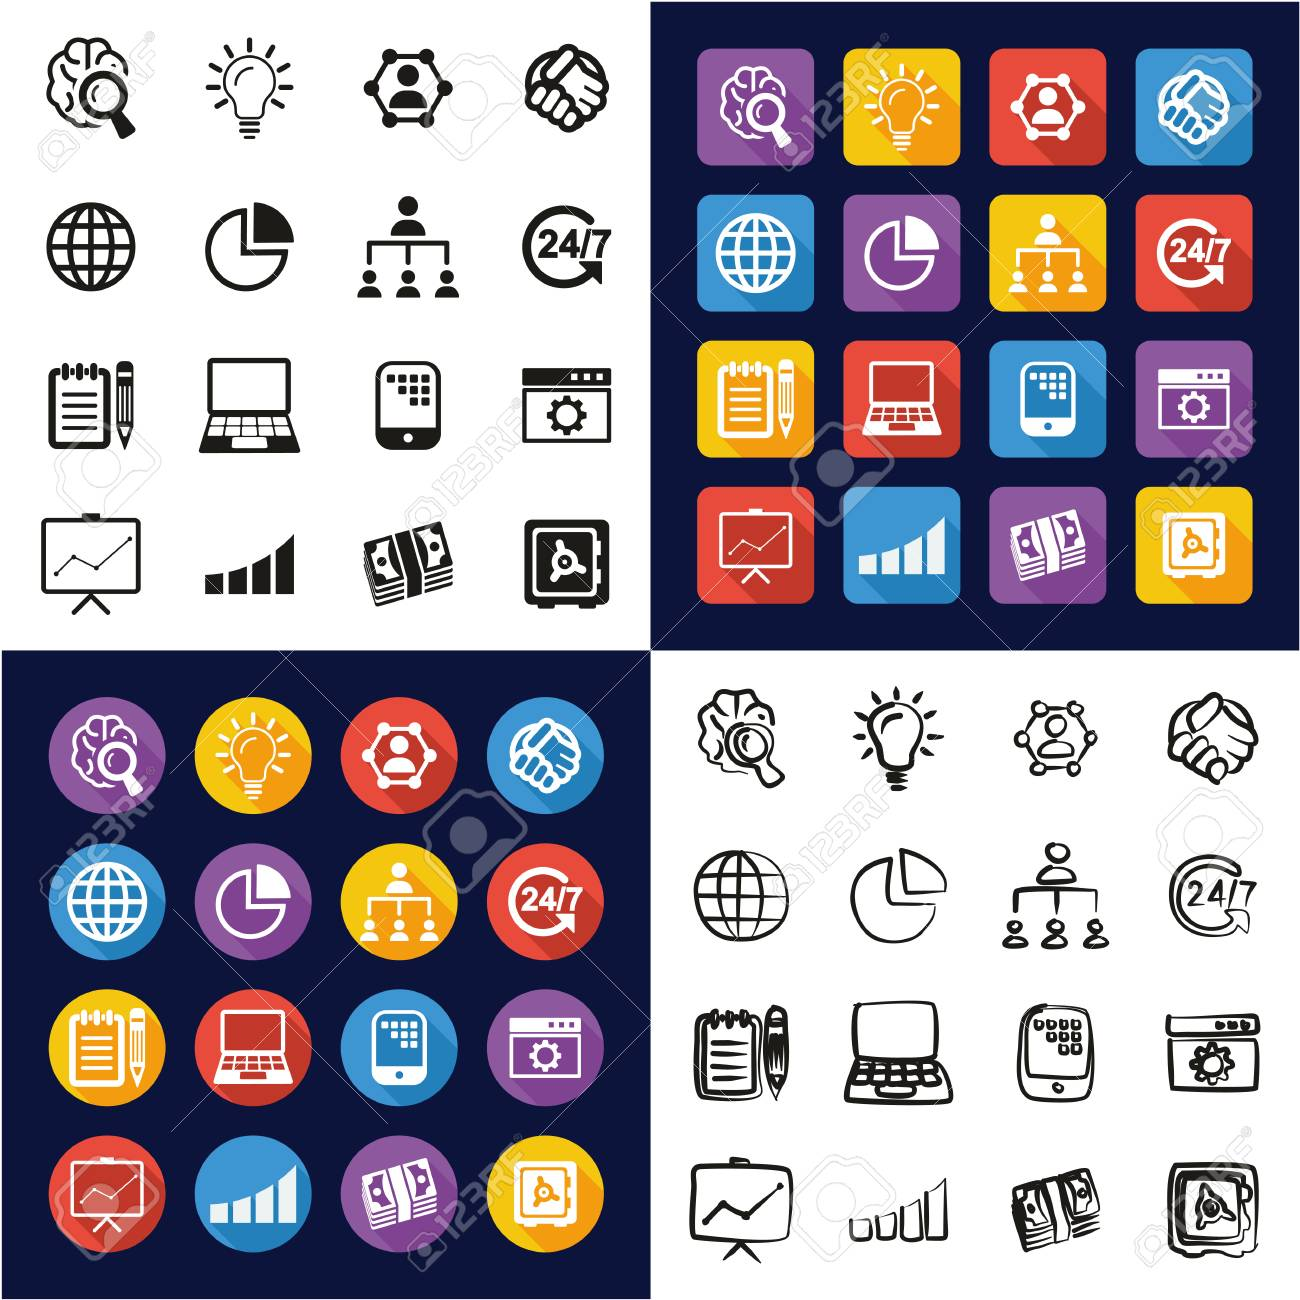 Business Enterprise Icons All in One Icons Black and White Color